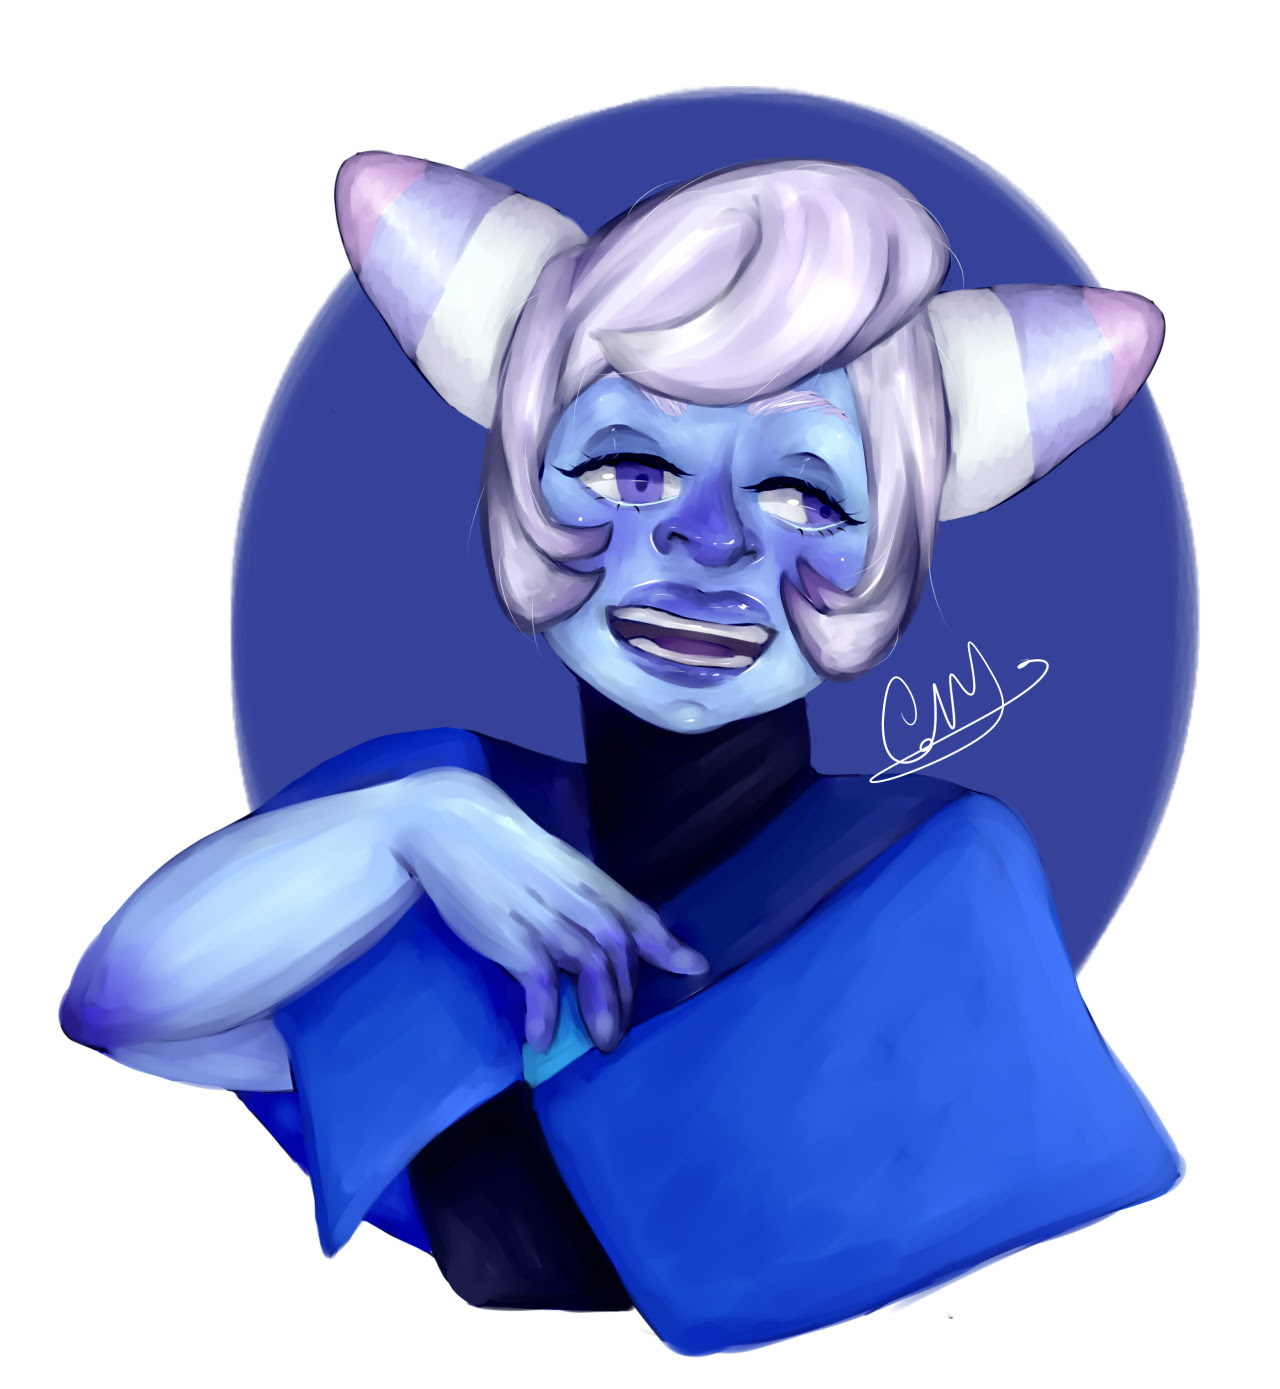 Holly Blue Agate from Steven Universe! Decided to do a little quick drawing of her. I'll update the speedpaint later 😁